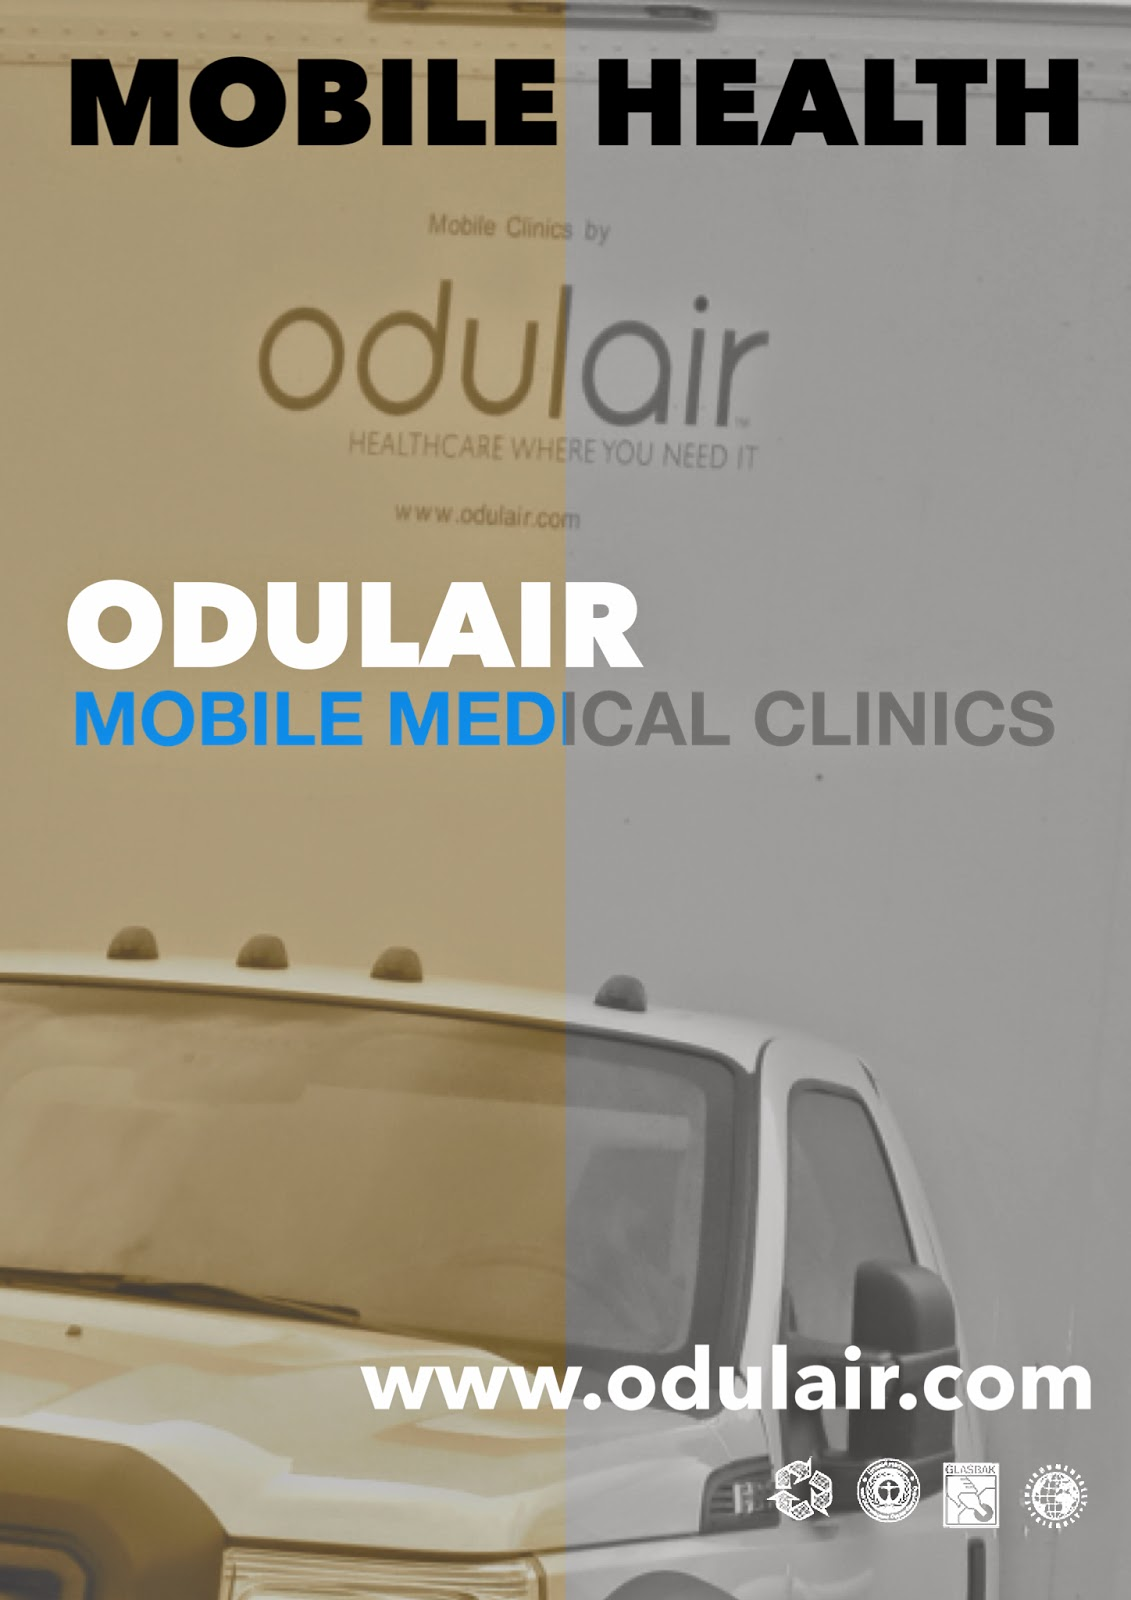 Mobile Clinics ODULAIR: Mobile Radiology Units - Mobile X-ray Units